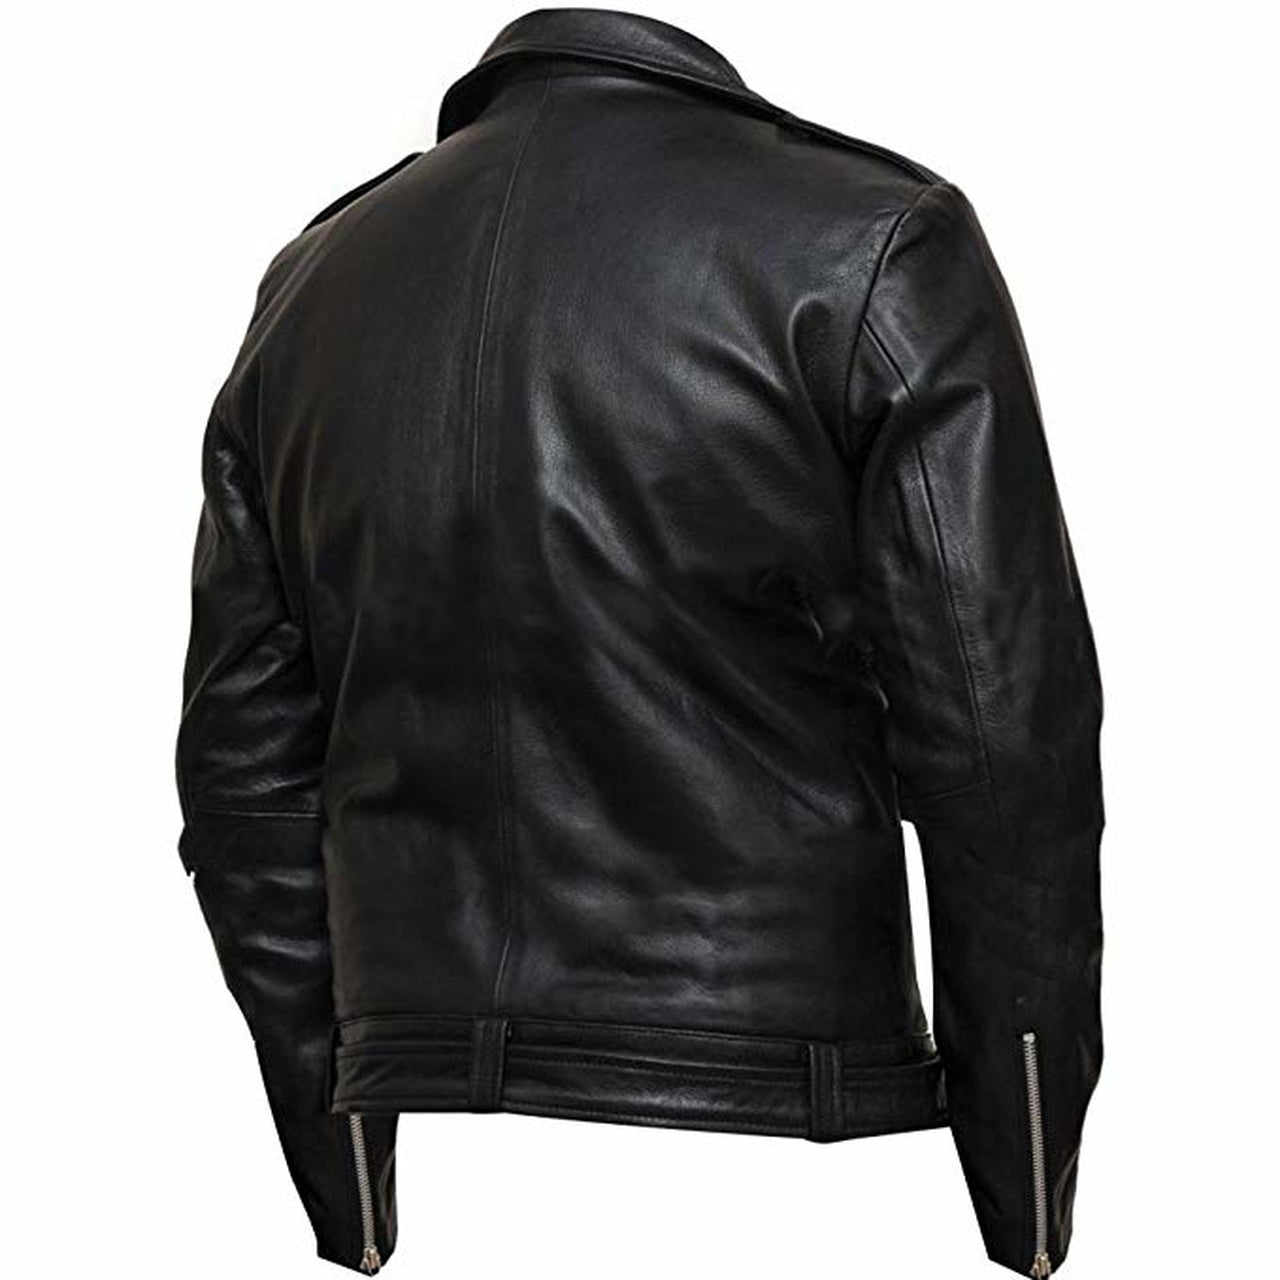 Walking Dead Black Biker Leather Motorcycle Jacket - Leather Jacket